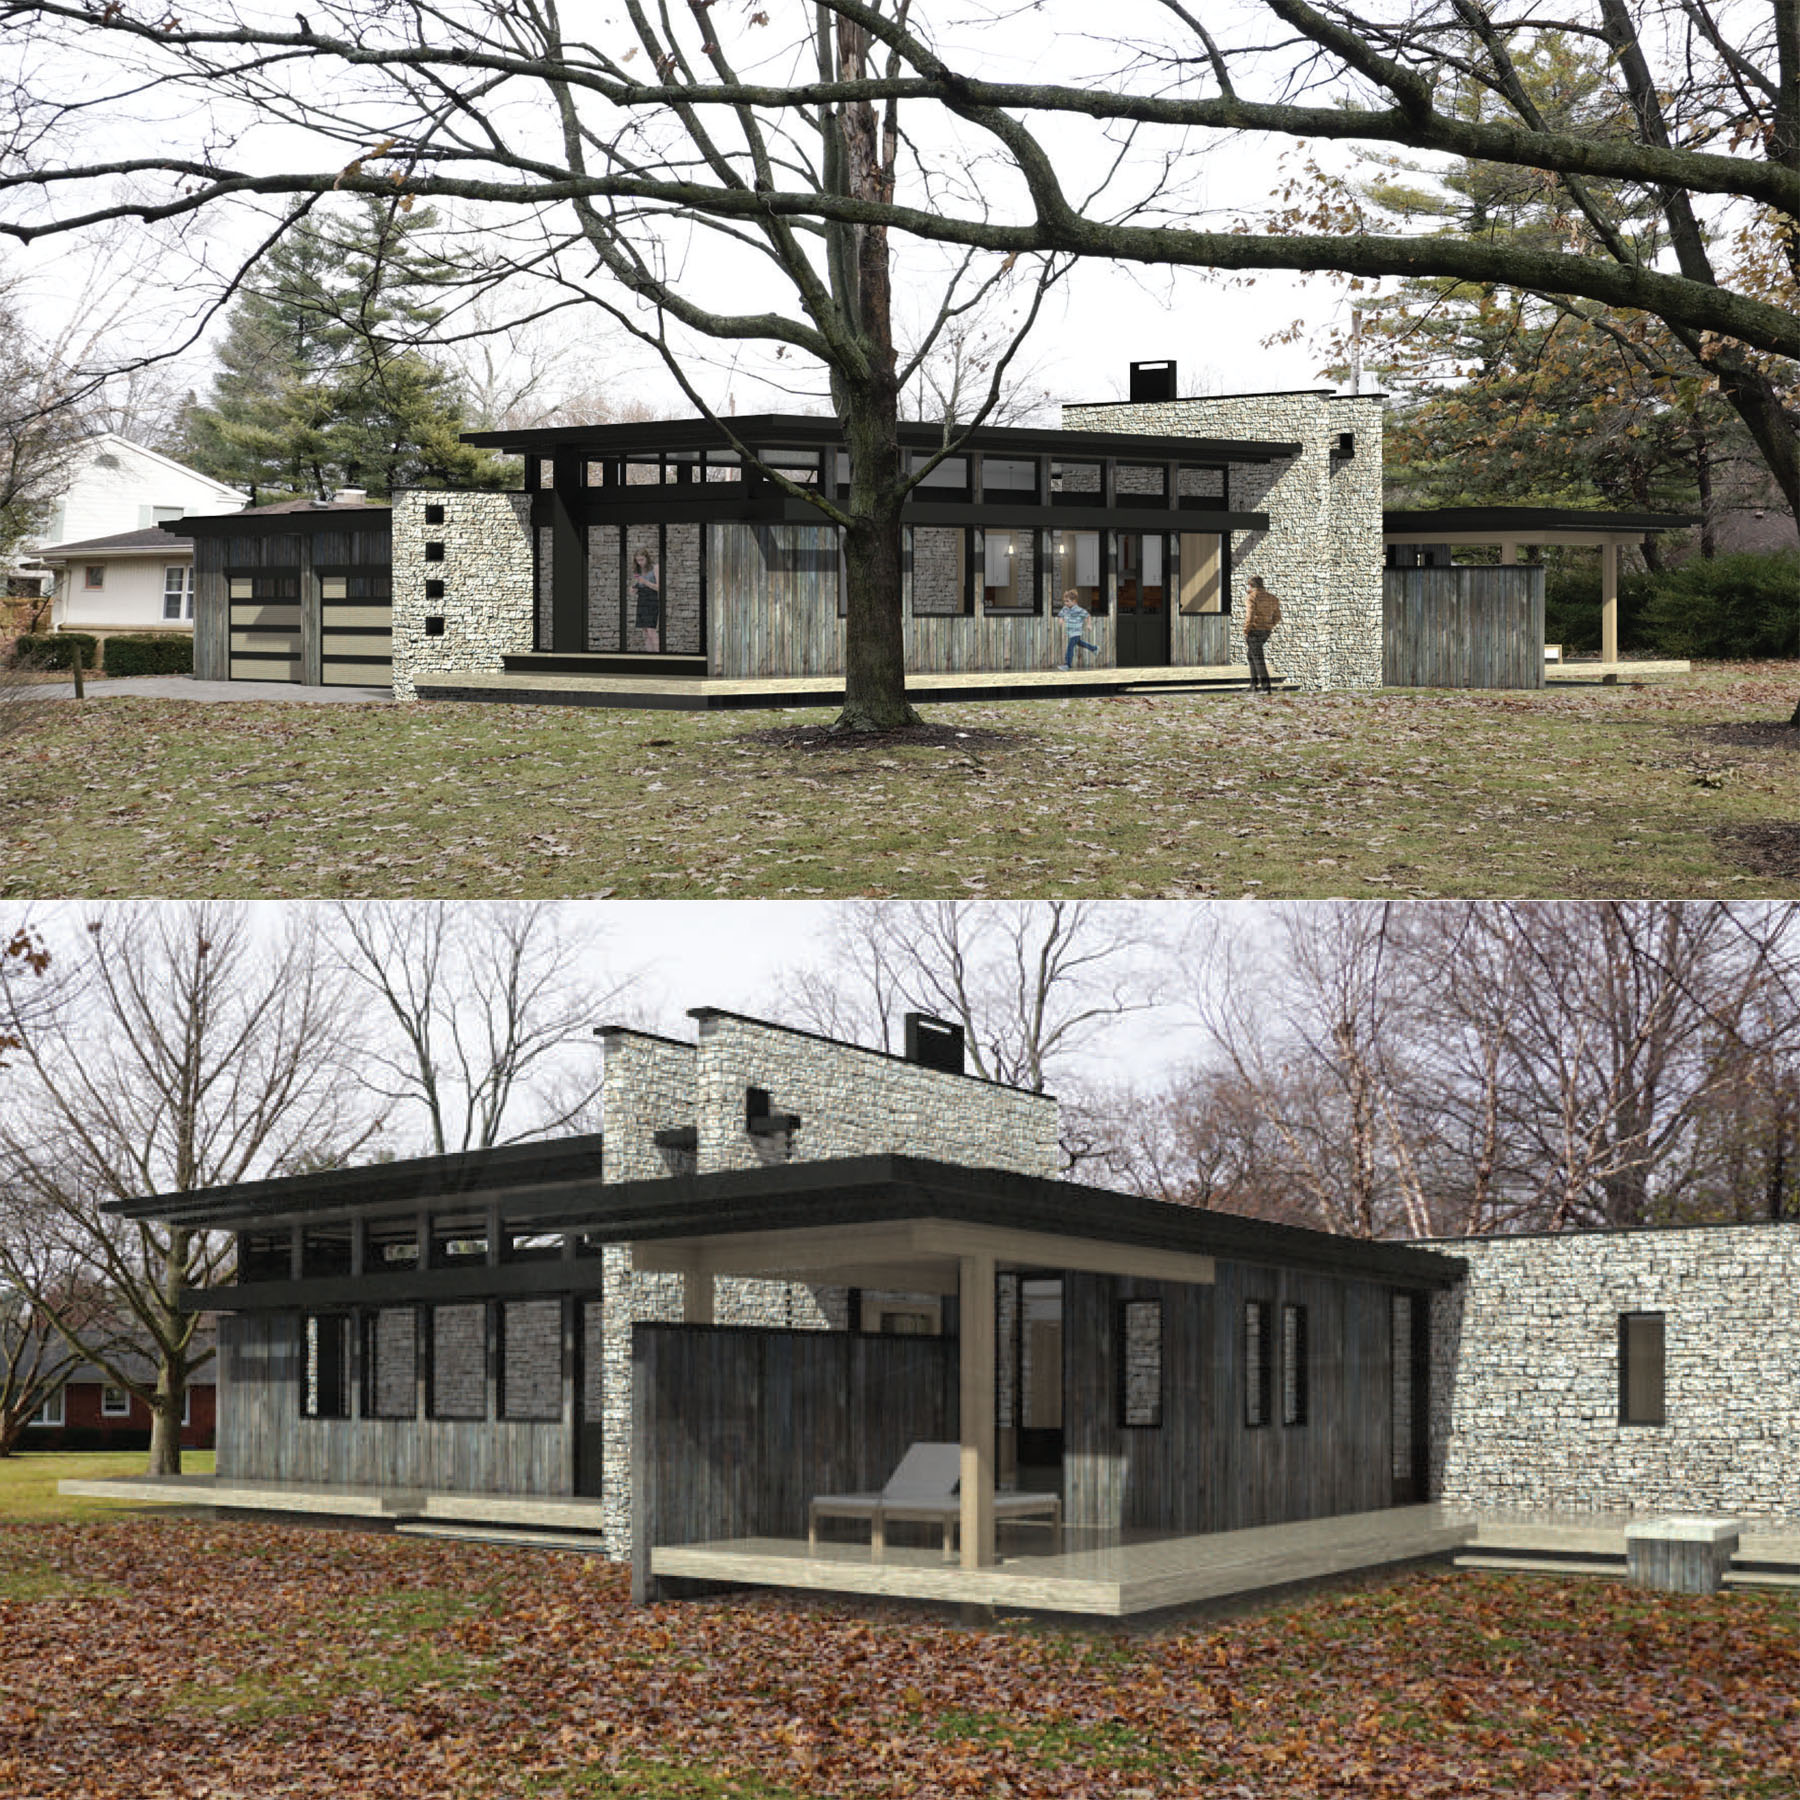 Exterior renderings of house made of stone and glass